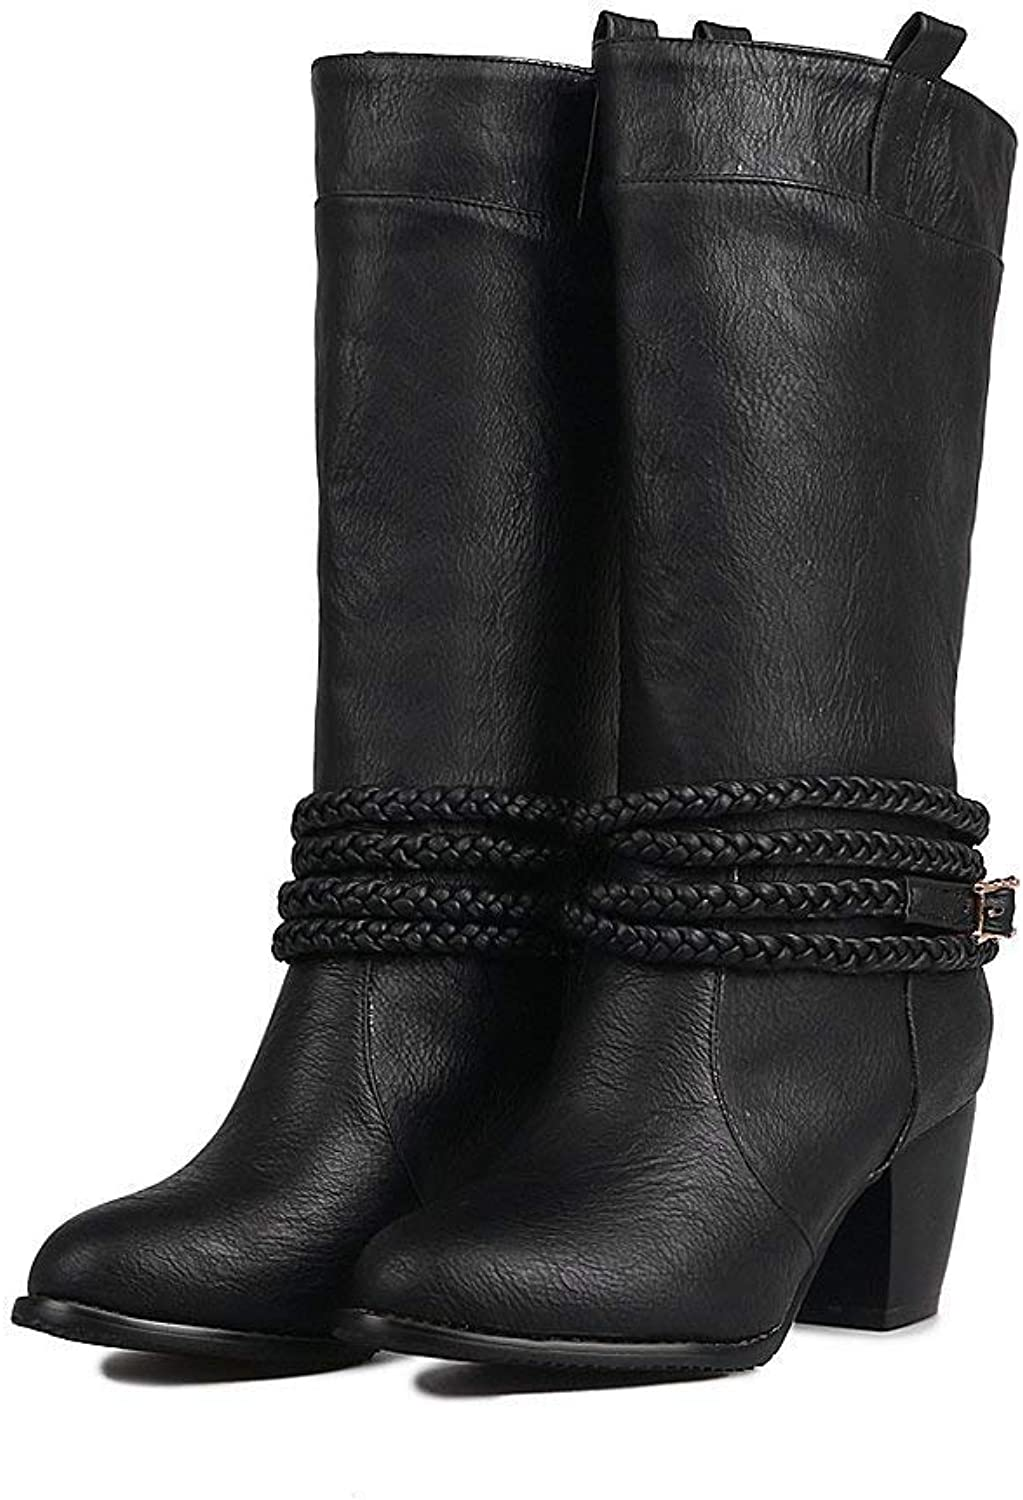 Womens Mid Calf Leather Boots Chunky Mid Heels Pull on Booties